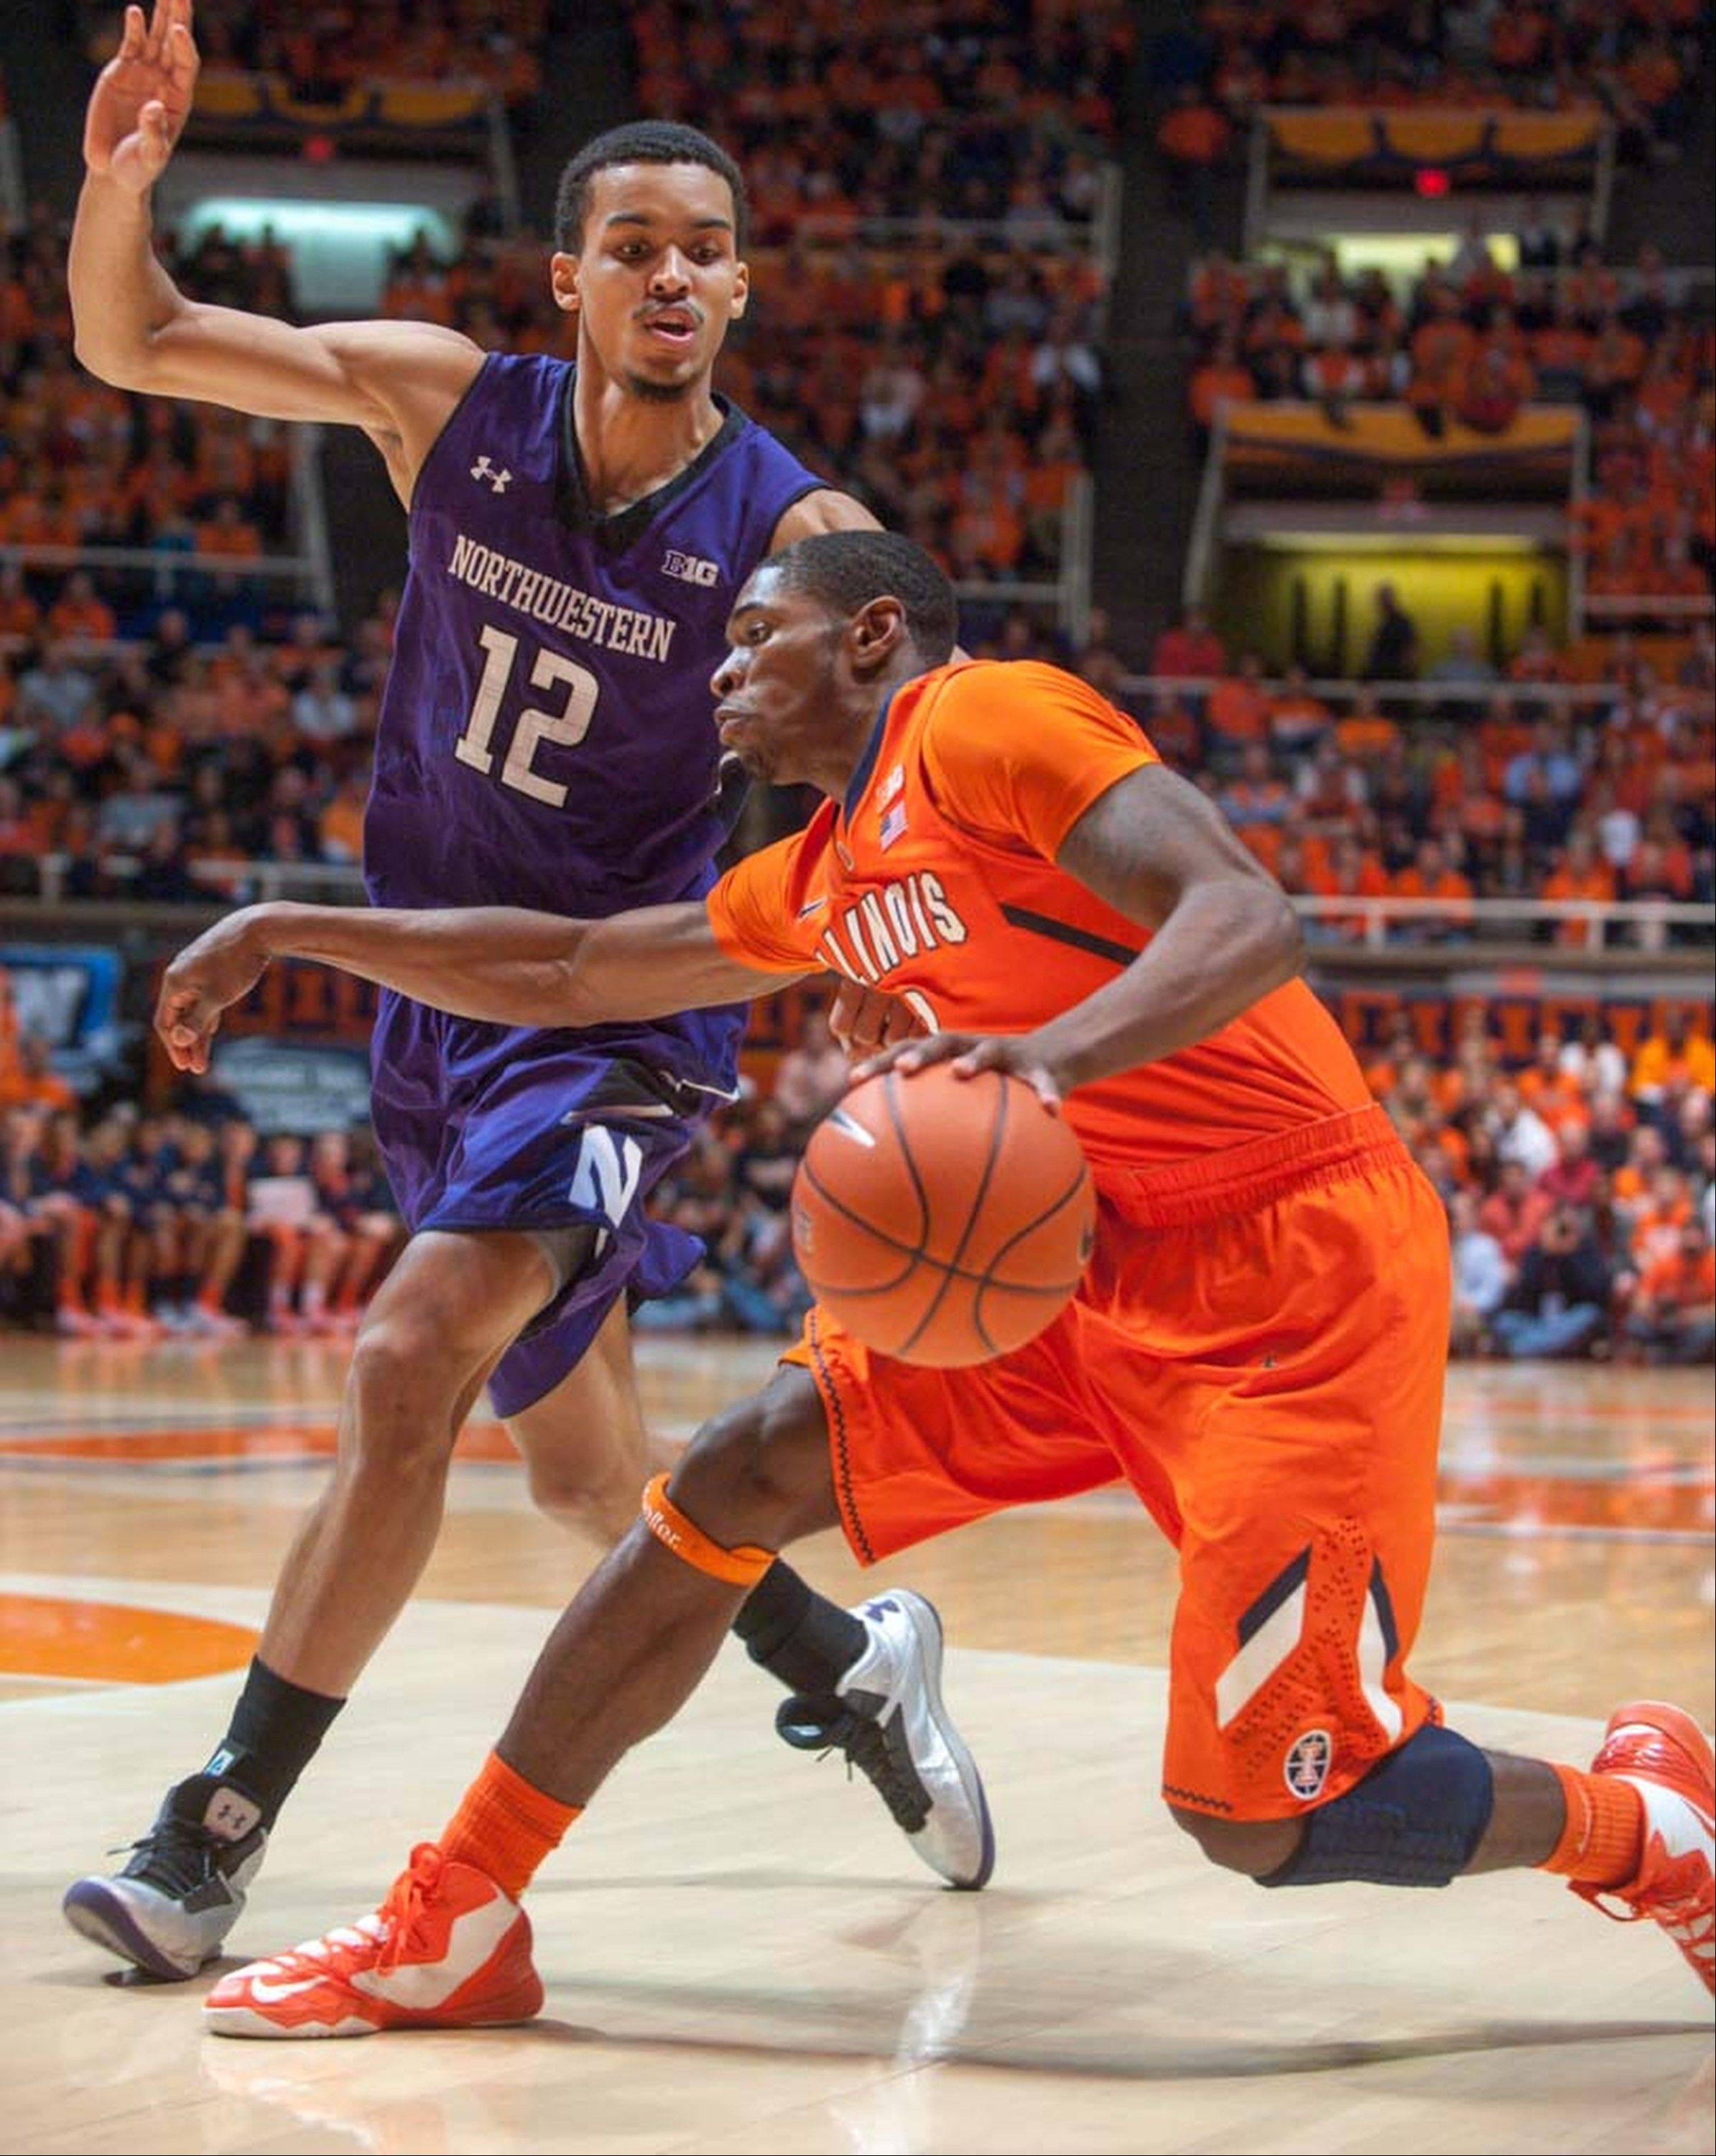 Illinois guard Brandon Paul, right, tries to move past Northwestern forward Jared Swopshire (12) during Thursday night�s game between the Illini and the Wildcats. Illinois� 68-54 loss could cost the team its Top 25 ranking.